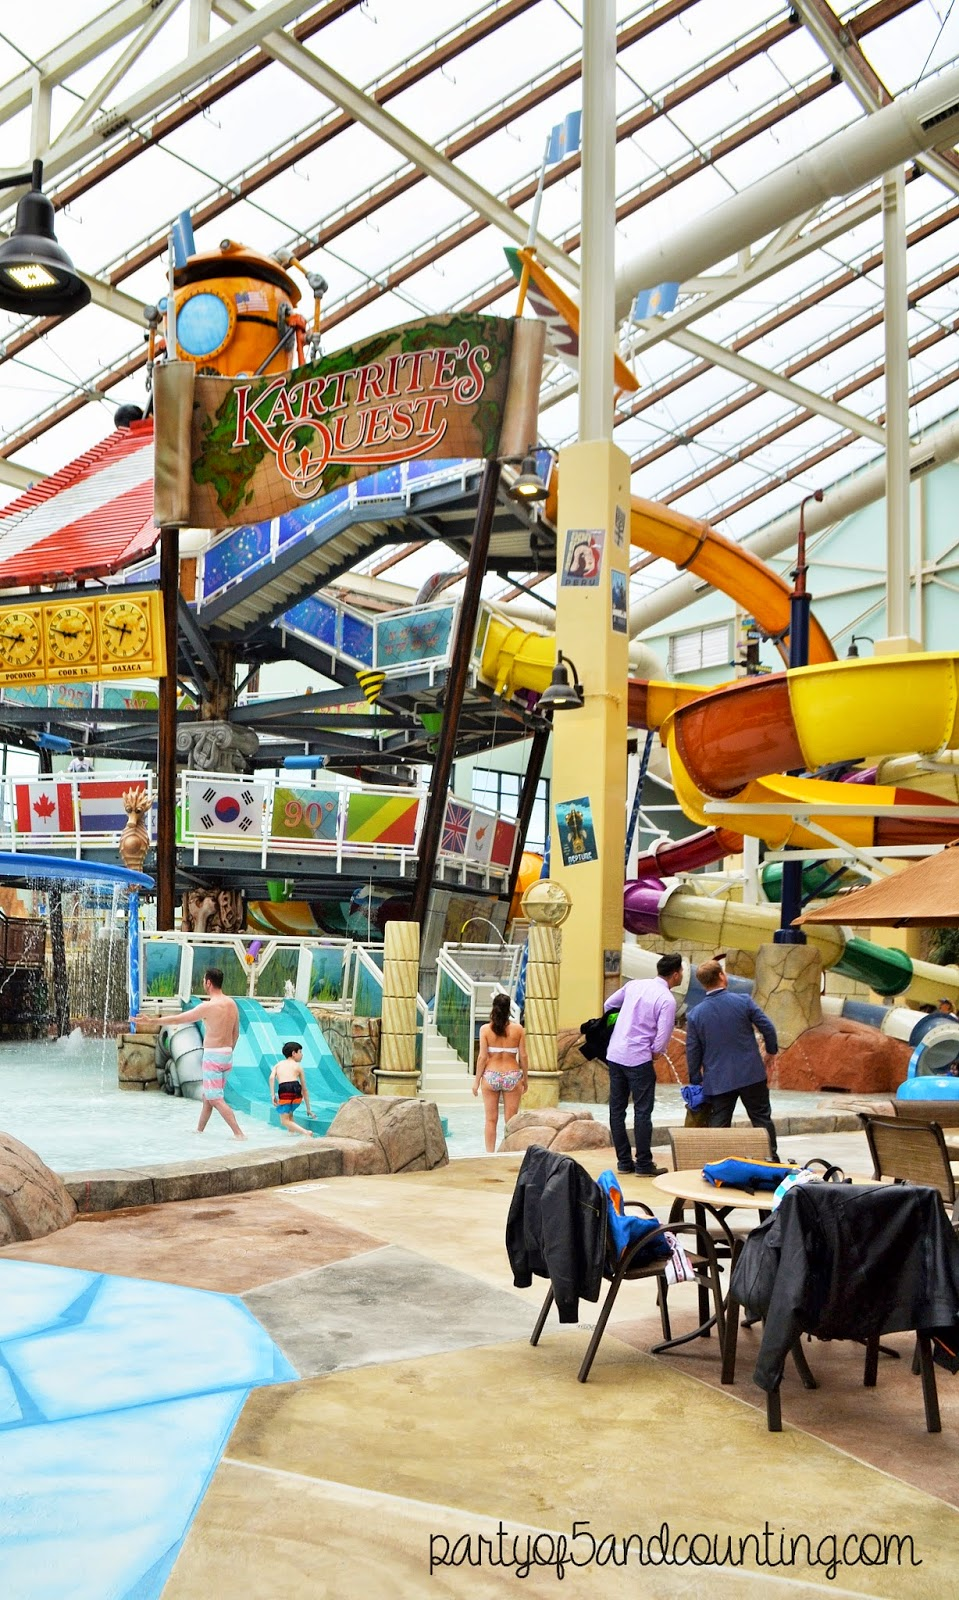 ... counting: Family Fun At Aquatopia Indoor Waterpark And Camelback Lodge